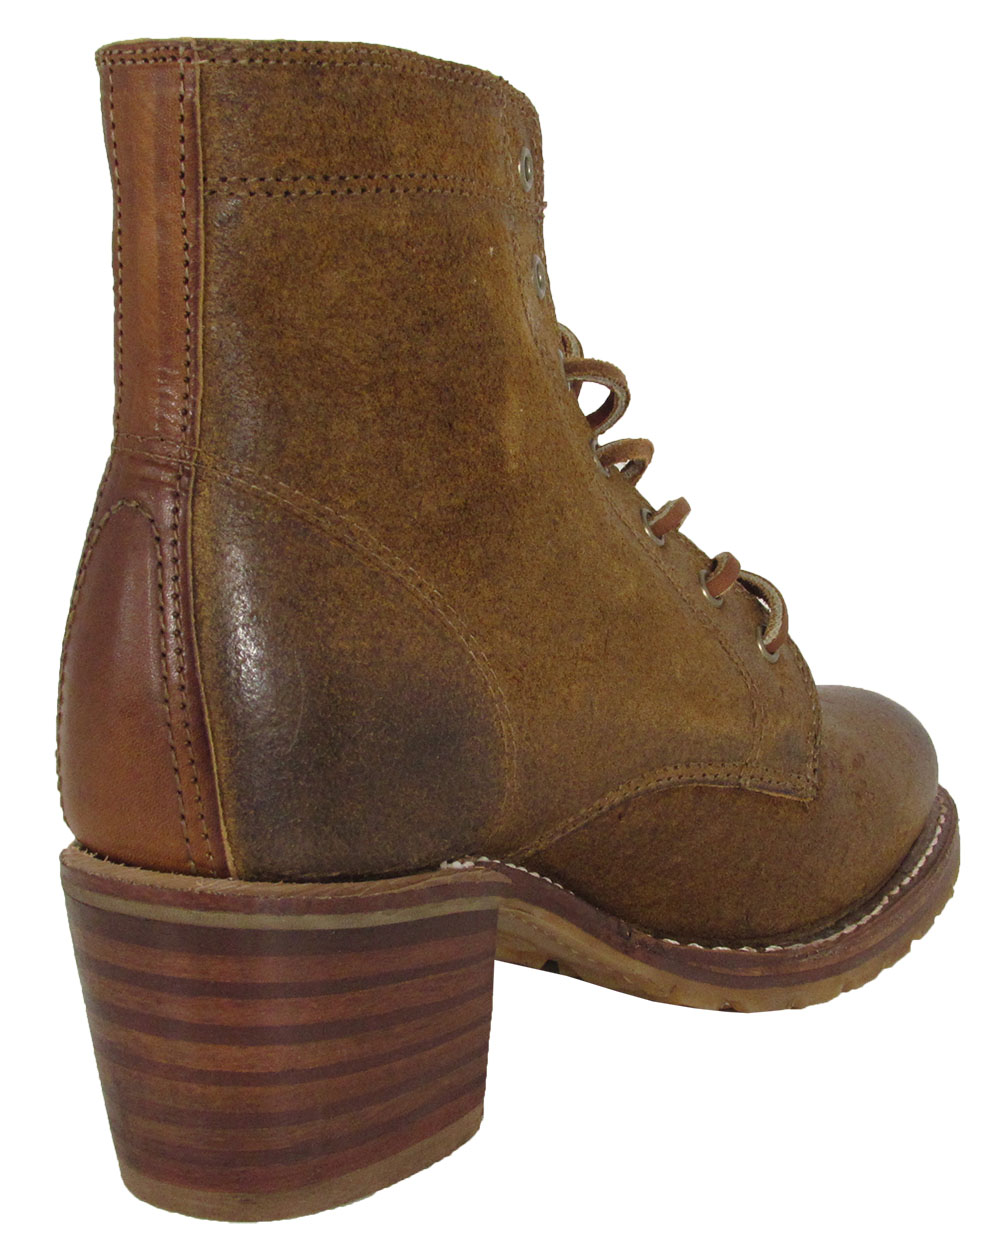 Frye-Womens-Sabrina-6G-Lace-Up-Suede-Ankle-Boots thumbnail 10